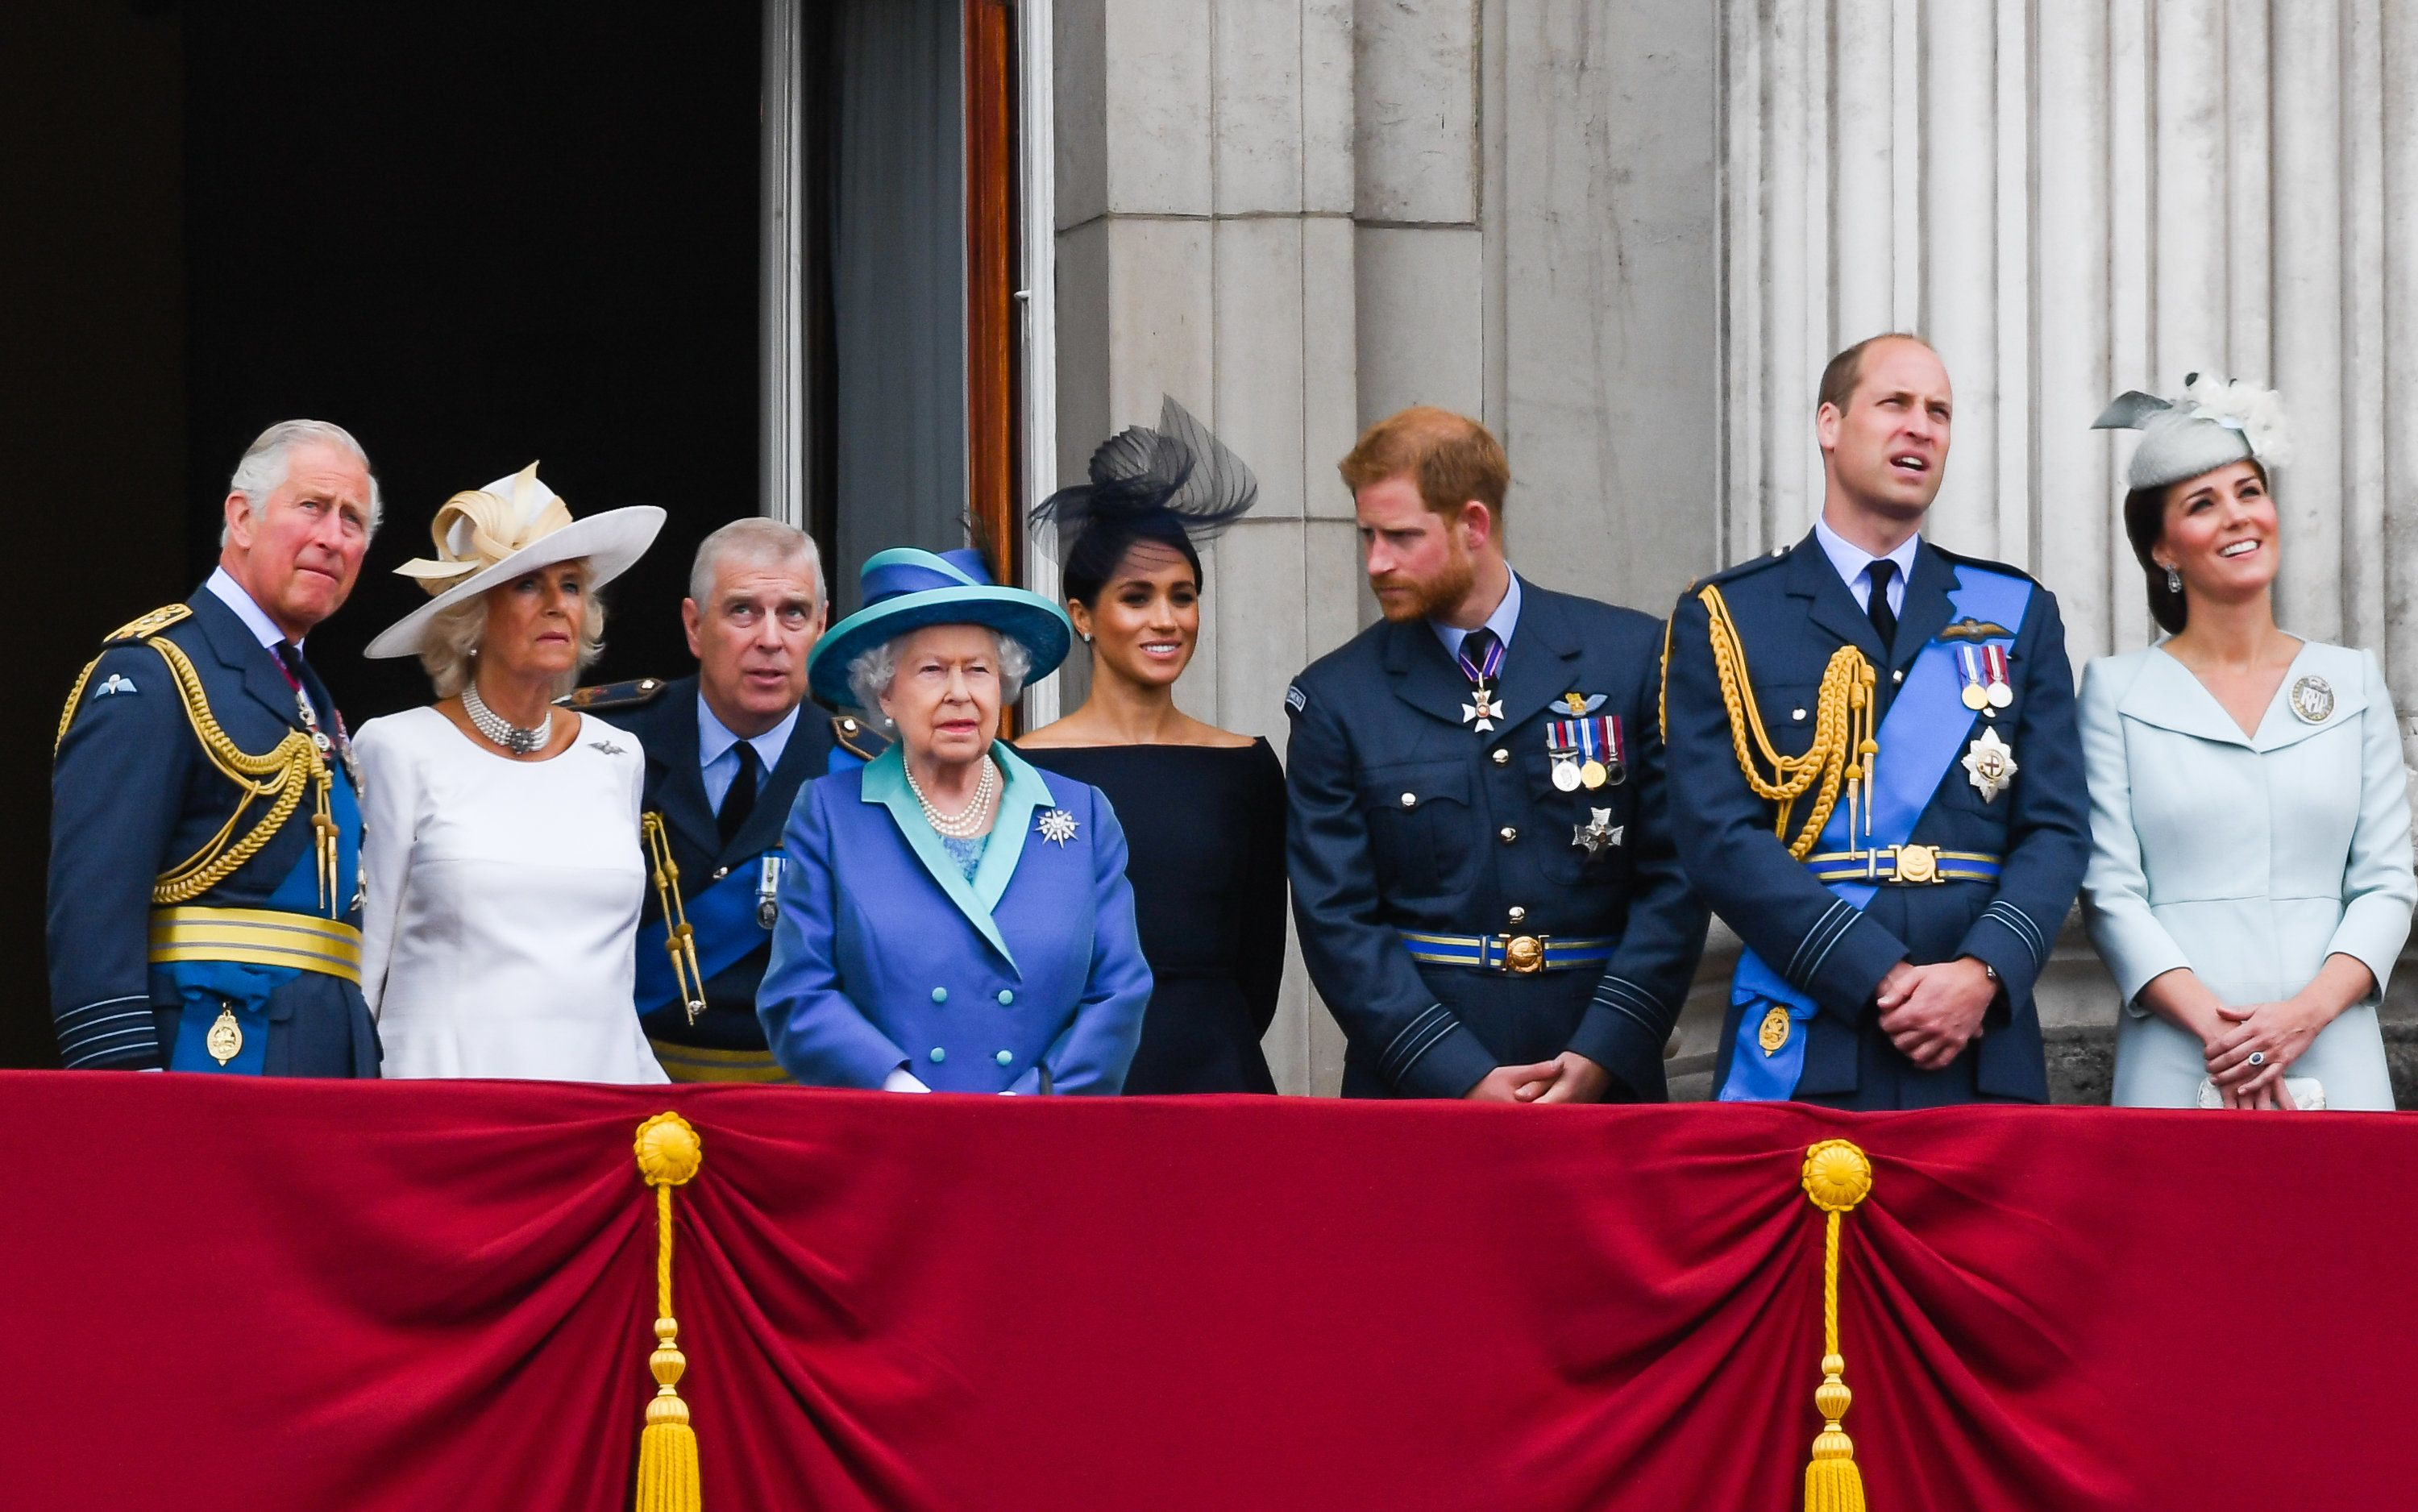 LONDON,  UNITED KINGDOM - JULY 1O:   Prince Charles, Prince of Wales, Camilla, Duchess of Cornwall, Prince Andrew, Duke of York,  Queen Elizabeth ll, Meghan, Duchess of Sussex, Prince Harry, Duke of Sussex, Prince William, Duke of Cambridge and Catherine, Duchess of Cambridge stand on the balcony of Buckingham Palace to view a flypast to mark the centenary of the Royal Air Force (RAF)  on July 10, 2018 in London, England. (Photo by Anwar Hussein/WireImage)